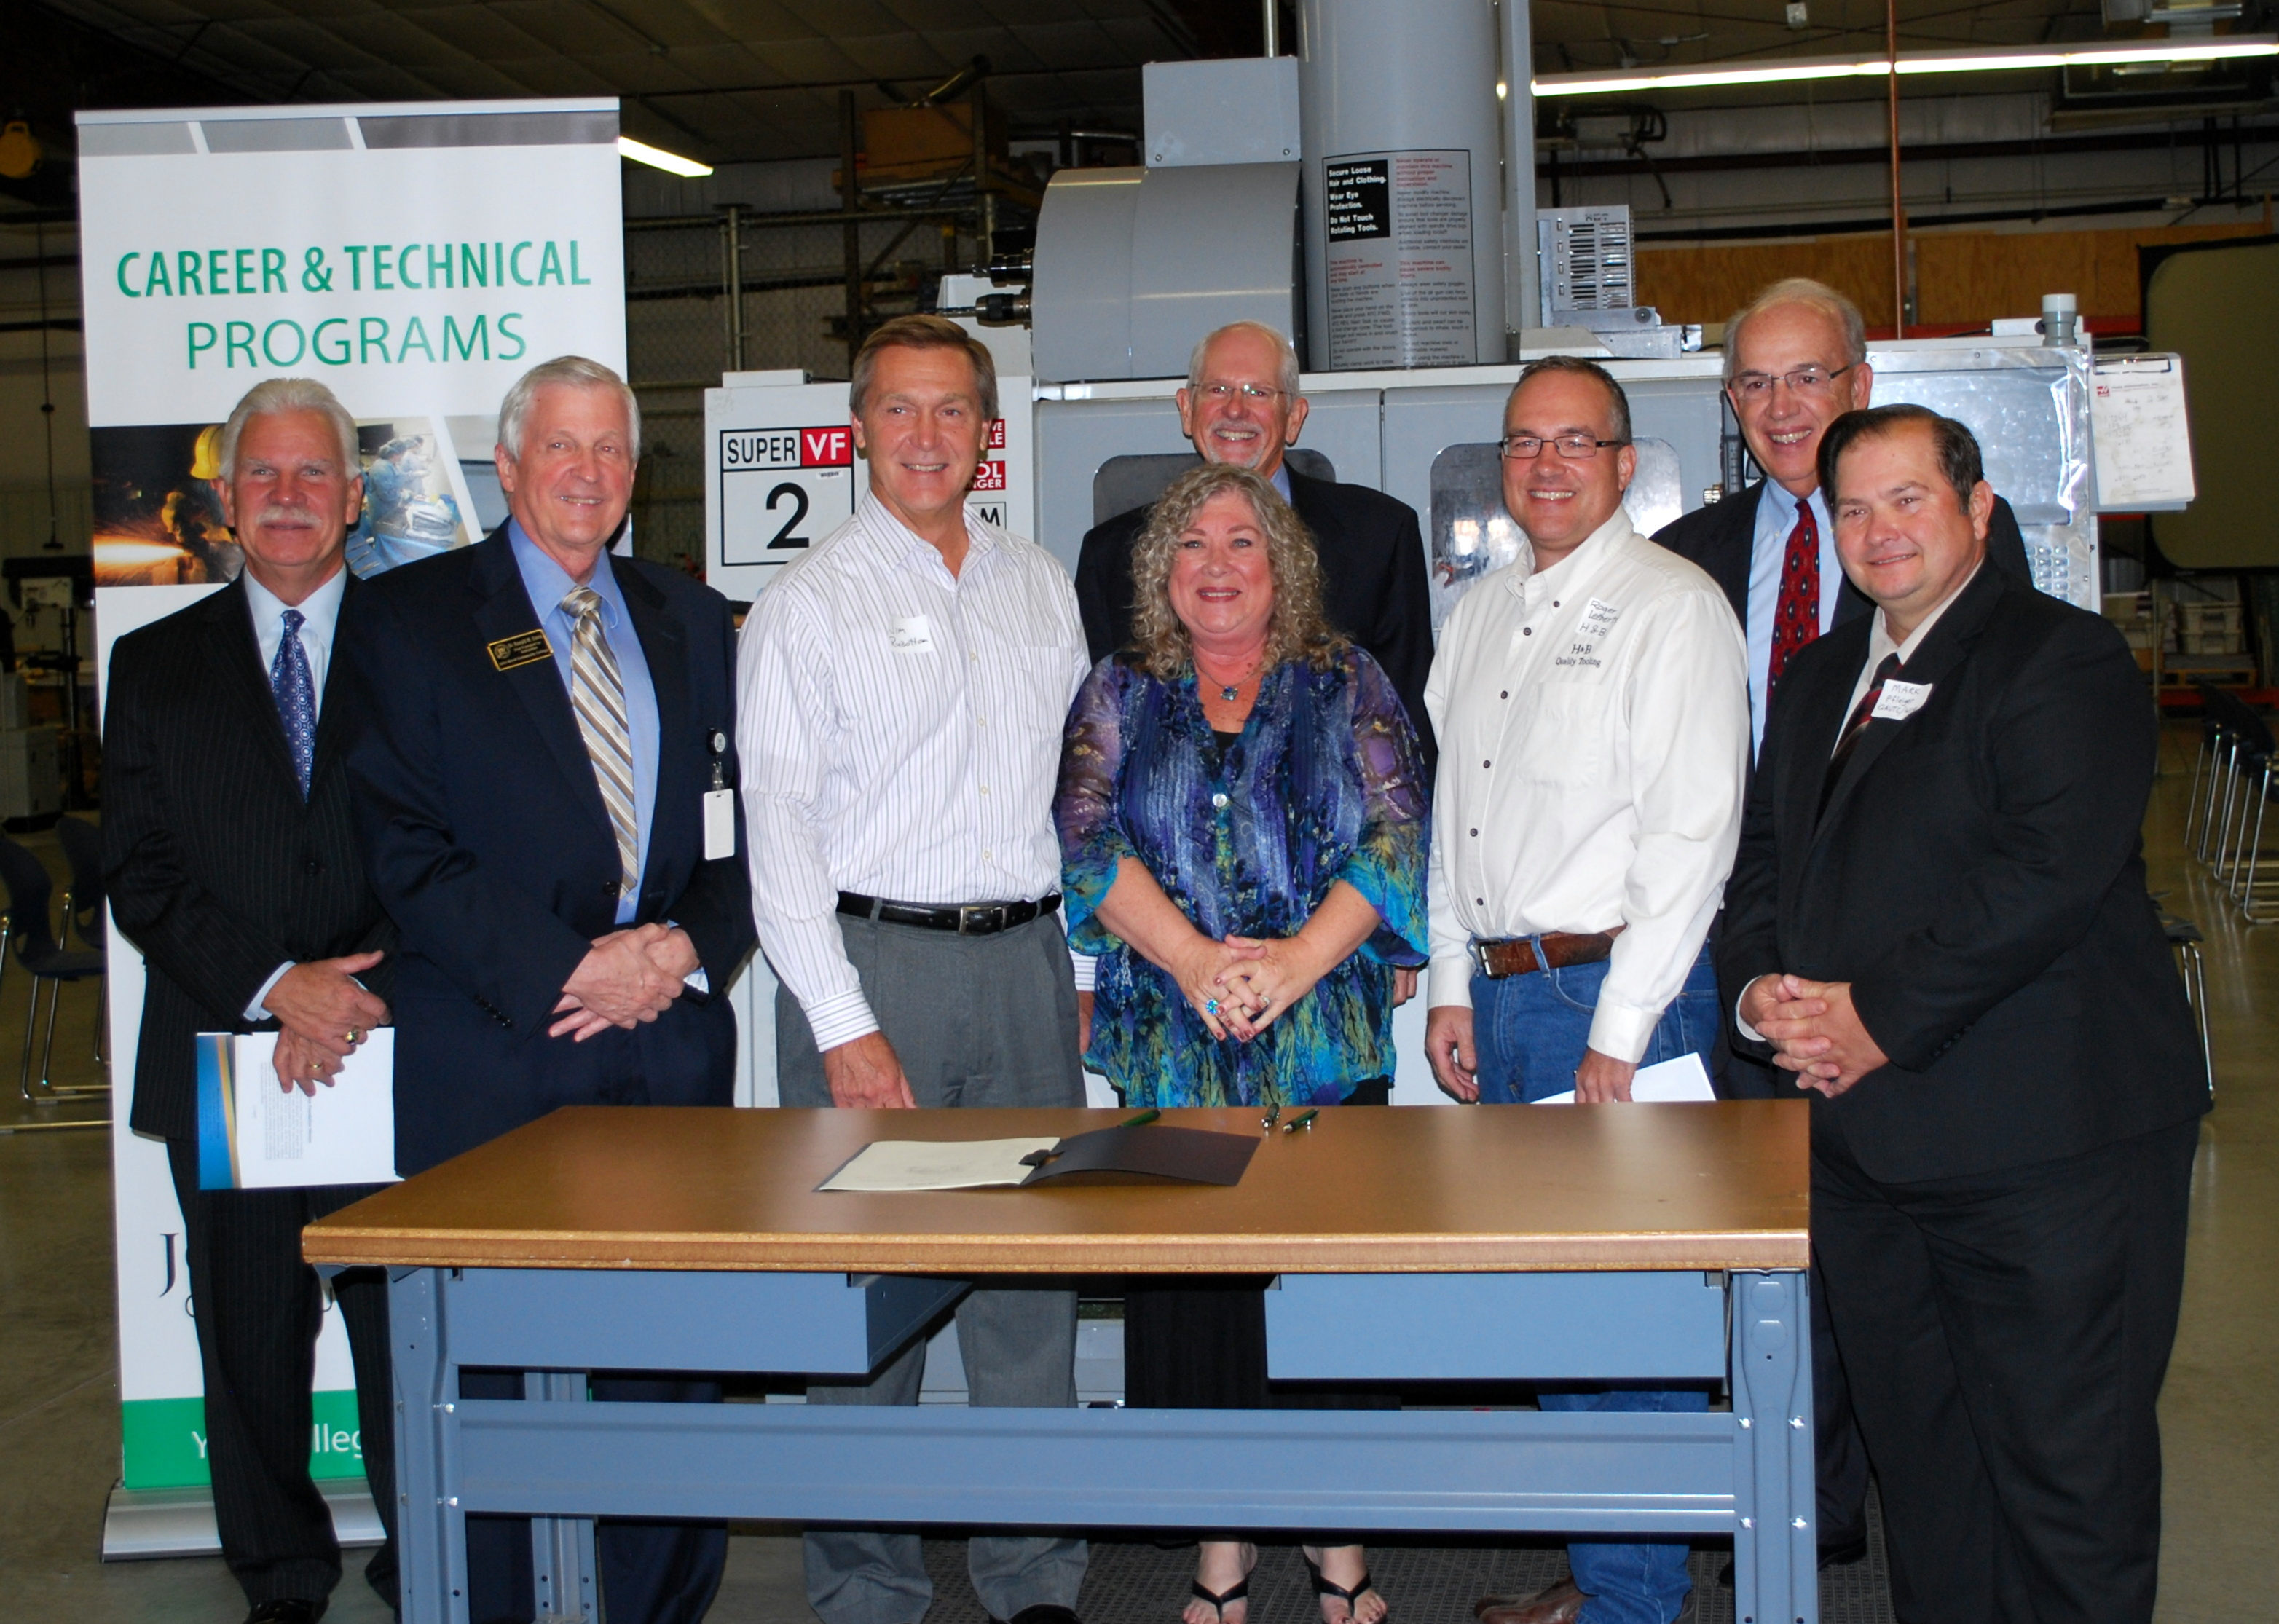 REGION CHARTERS COURSE TO TRAIN STUDENTS FOR ADVANCED MANUFACTURING CAREERS